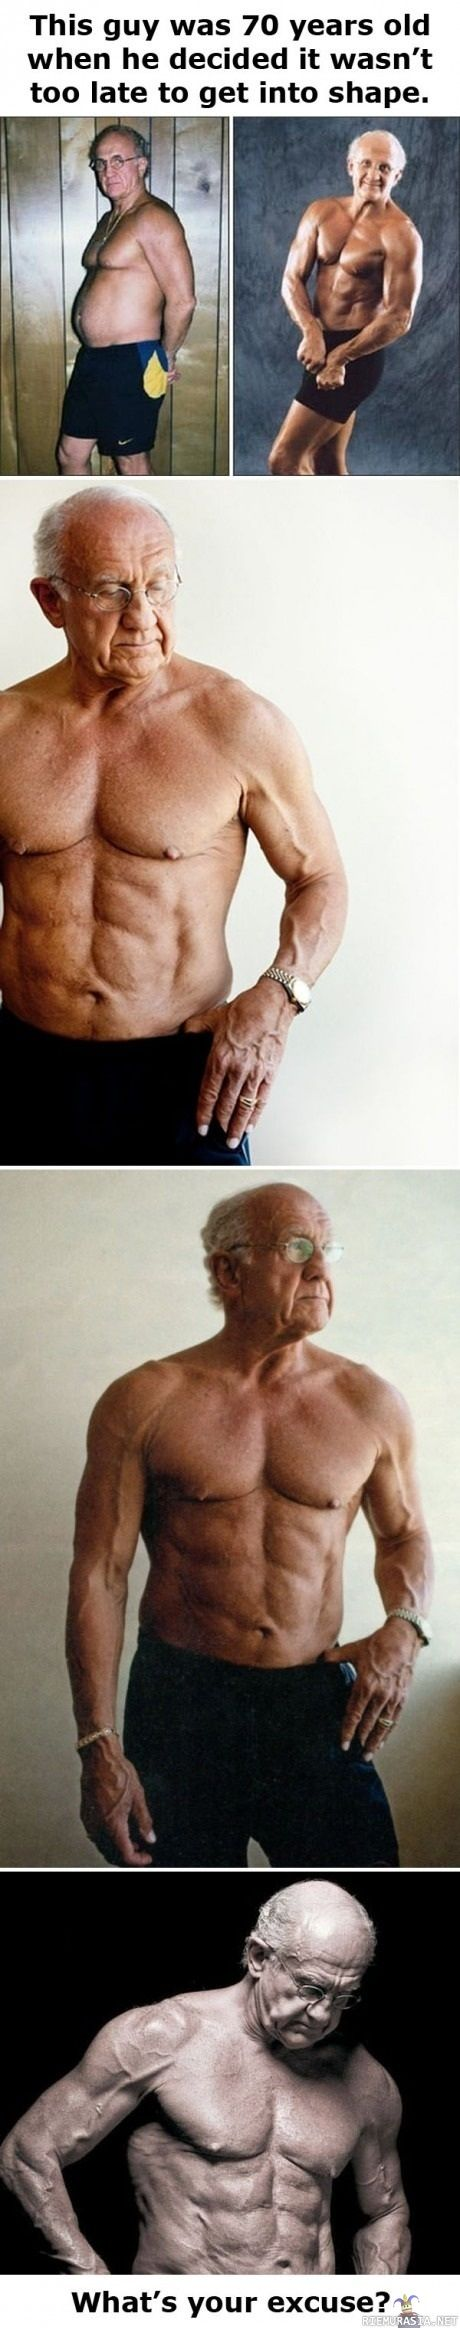 Nothing matters except willingness to sacrifice: Noexcuses, Fitness, Too Late, 70 Years, No Excuses, Fit Inspiration, Health, Guys, Fit Motivation